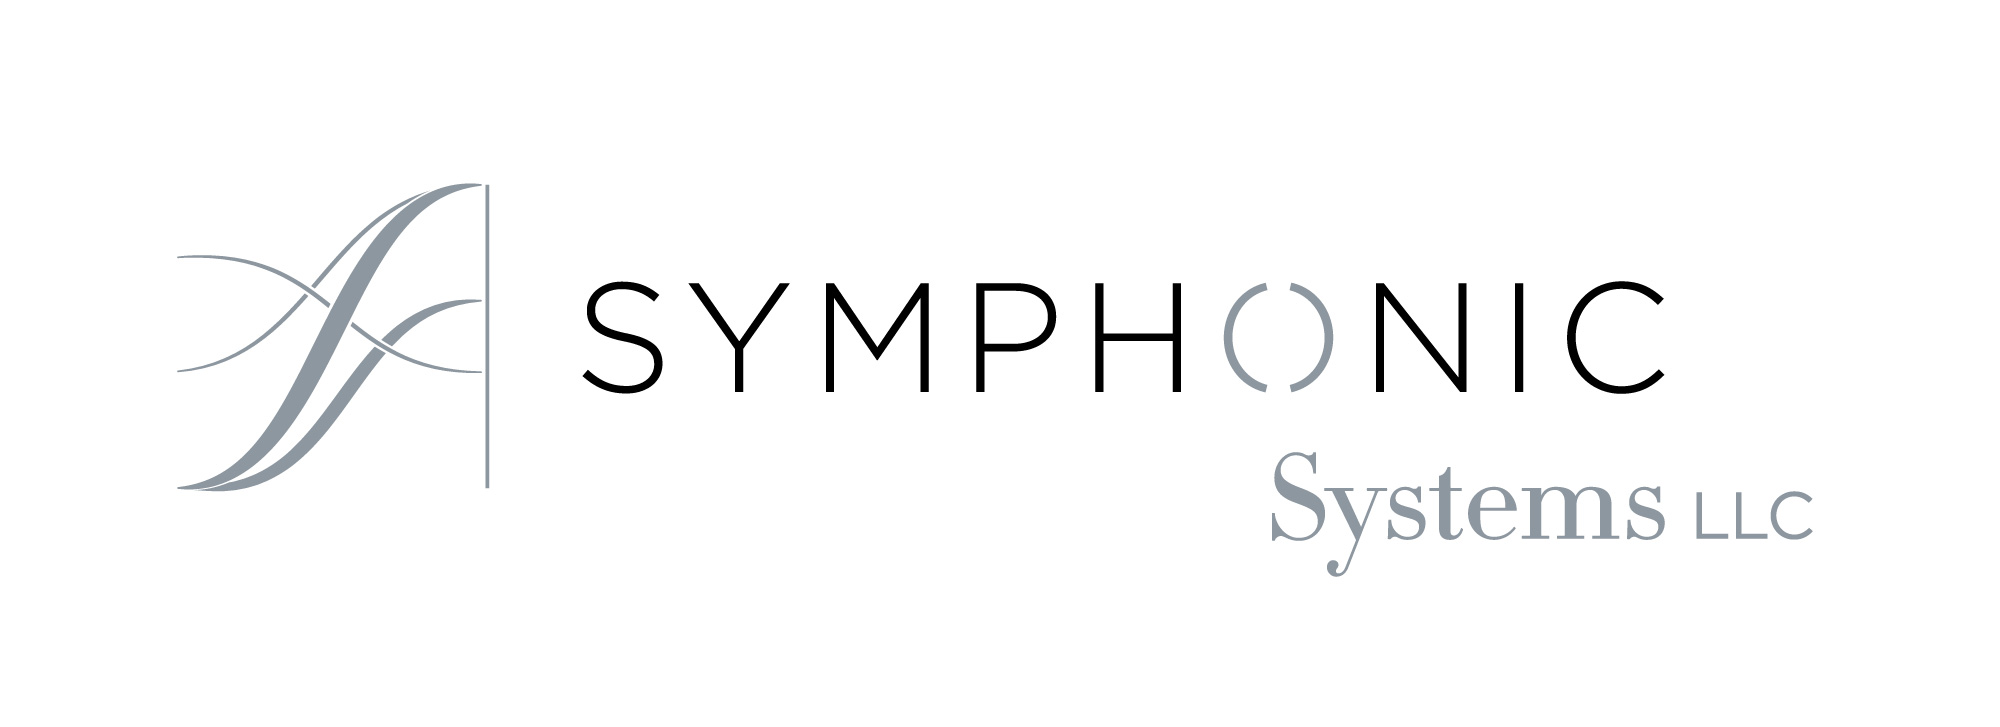 Symphonic Systems Logo Woven